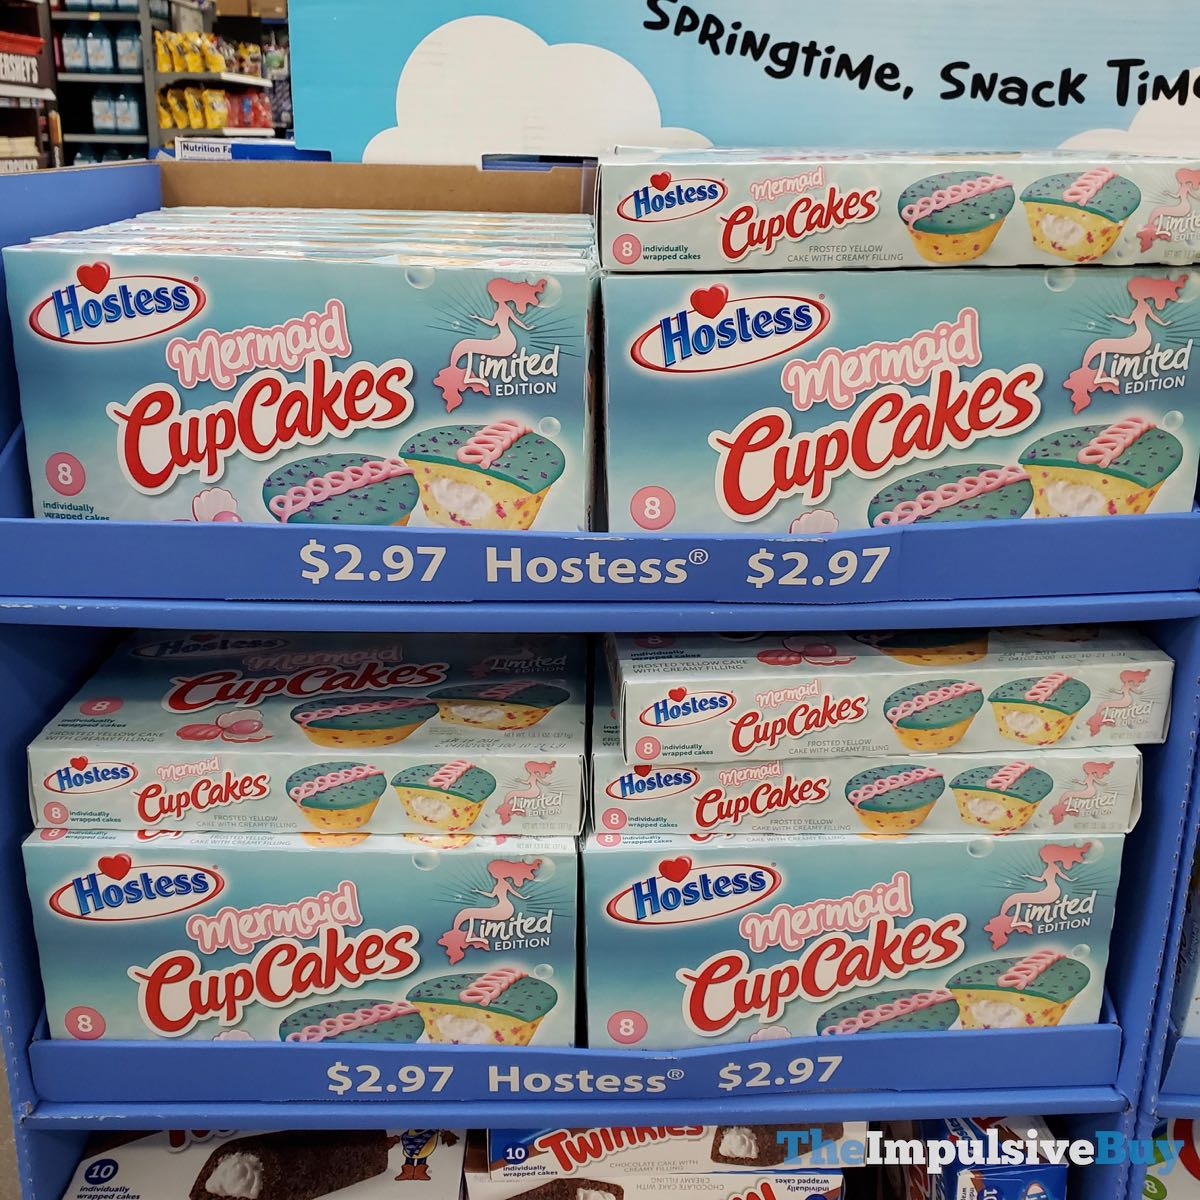 SPOTTED: Hostess Limited Edition Mermaid CupCakes - The